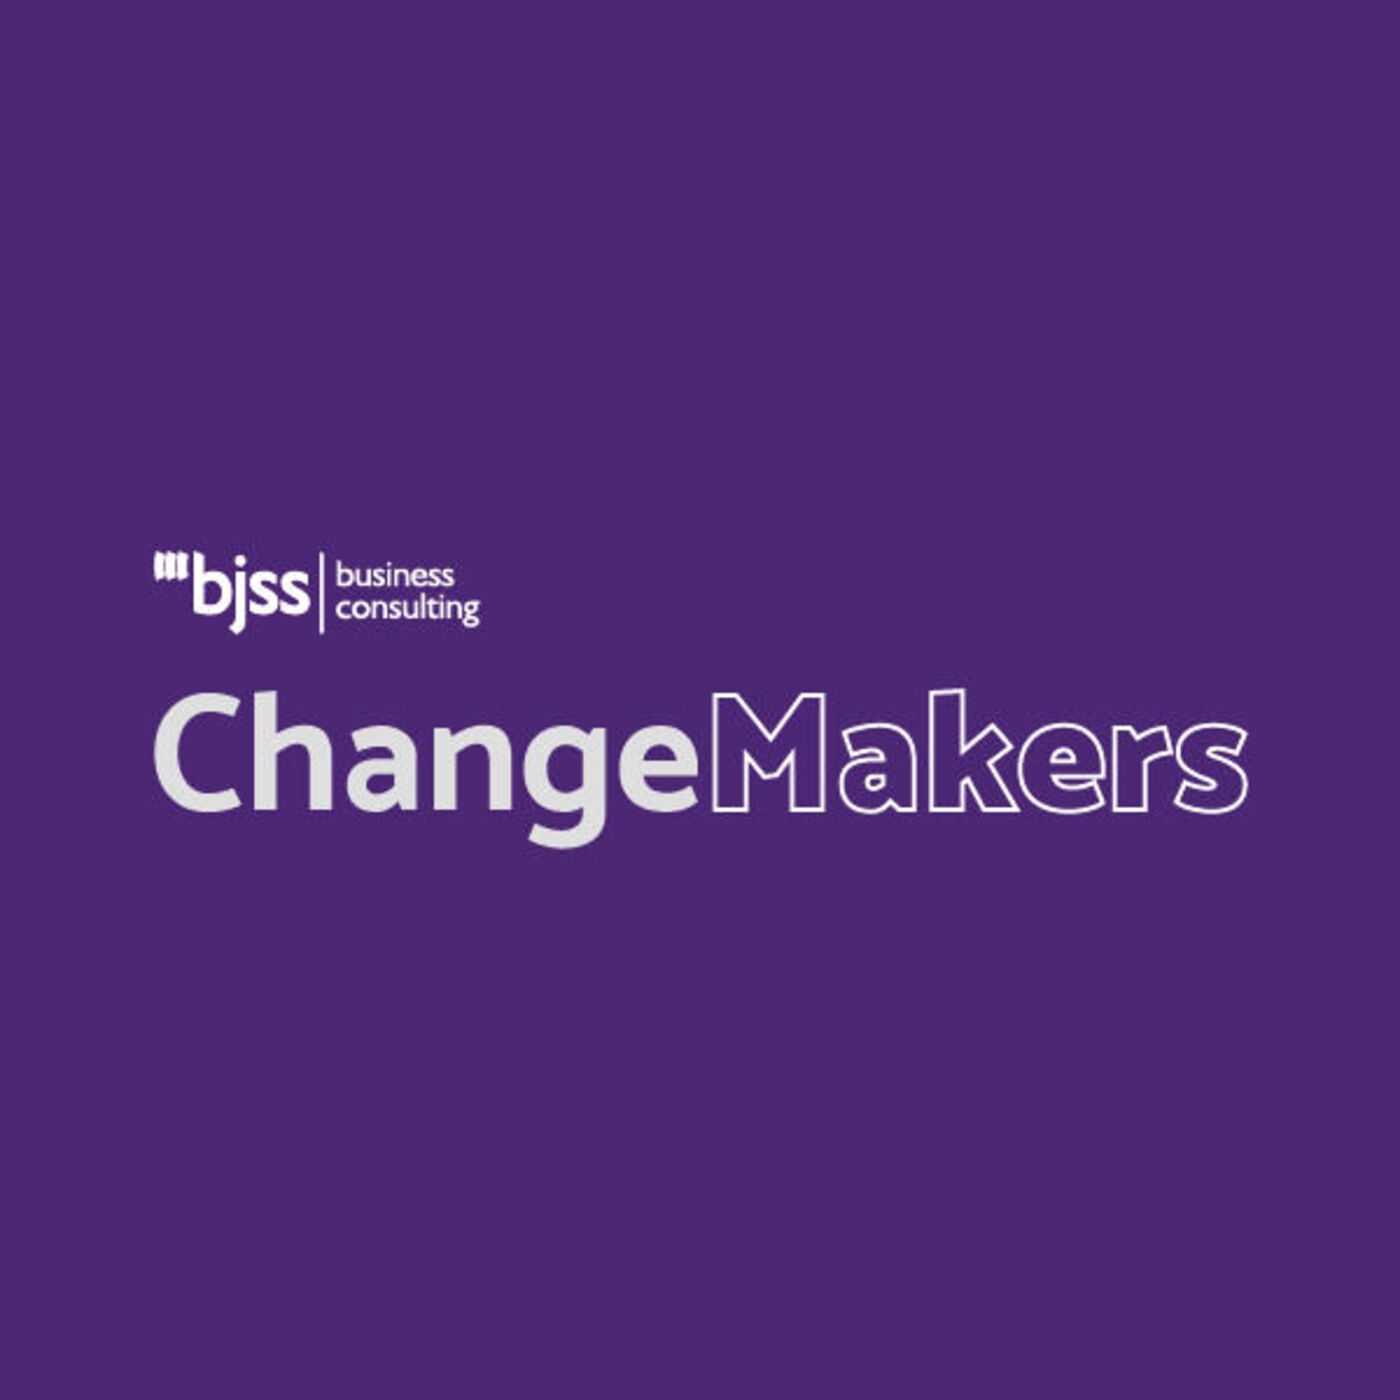 ChangeMakers – Episode 2: The experience of change